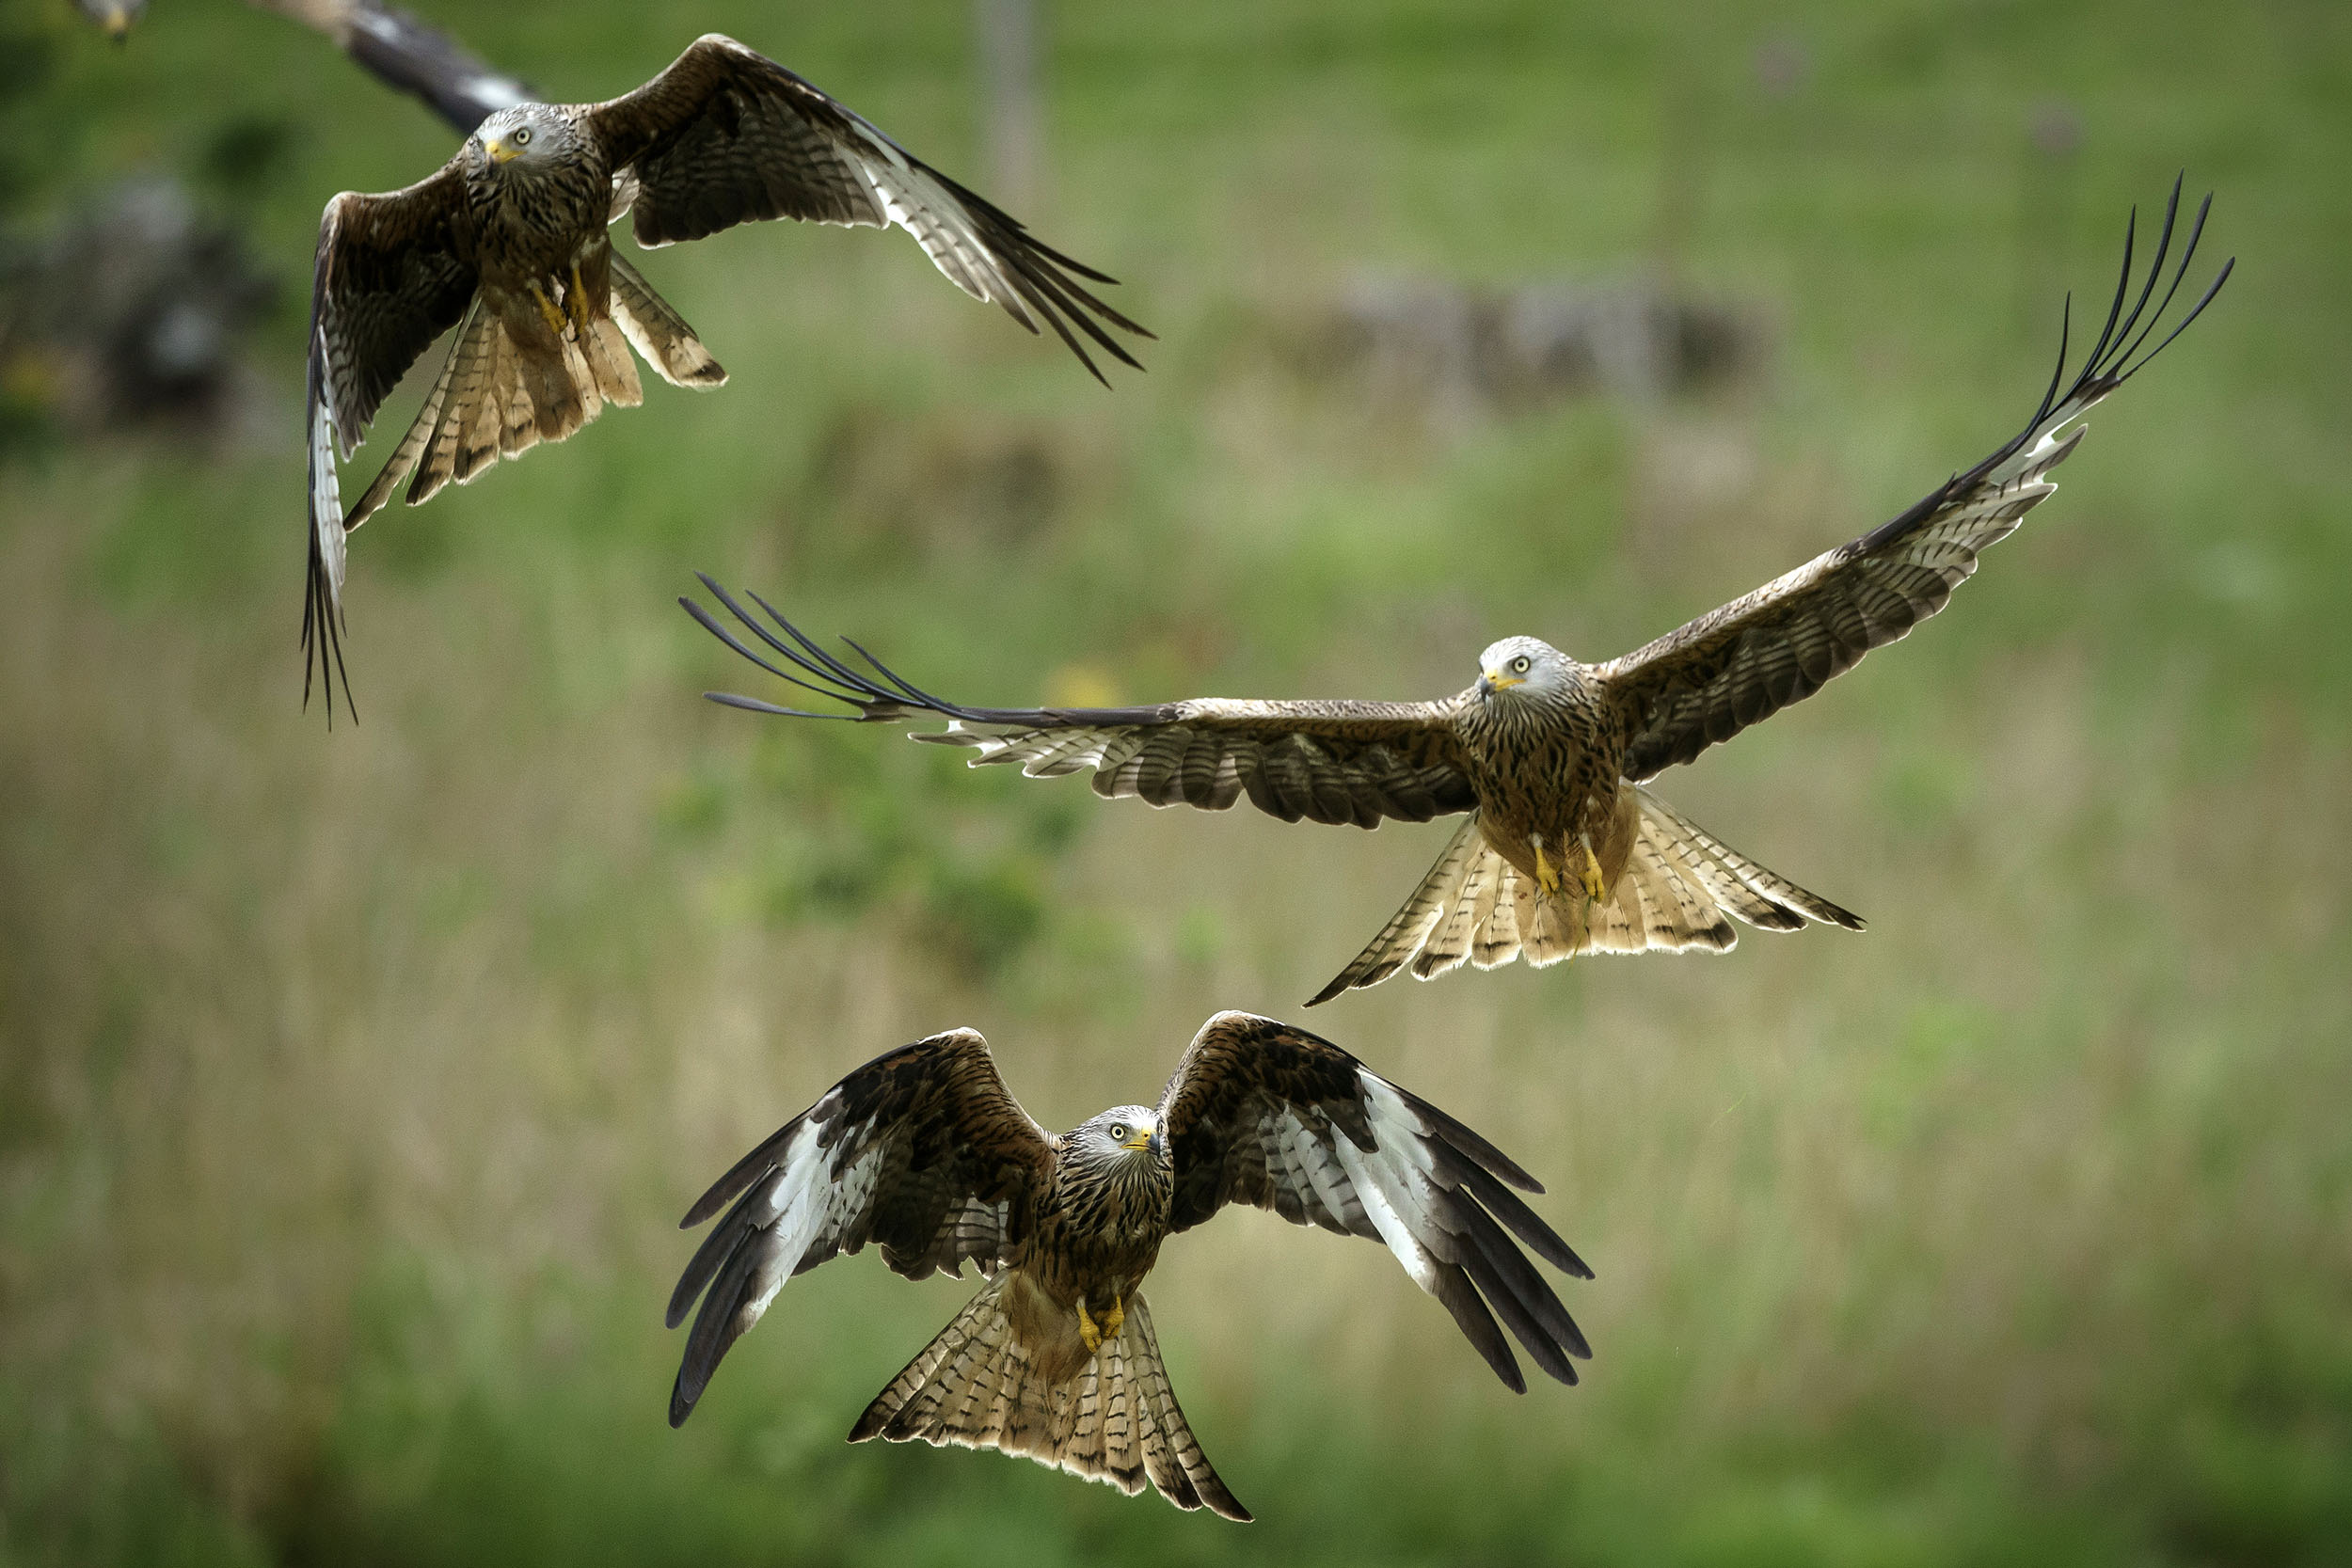 Red kites descend on a feeding station at the Gigrin Farm Red Kite Feeding Centre in Rhayader, Wales.